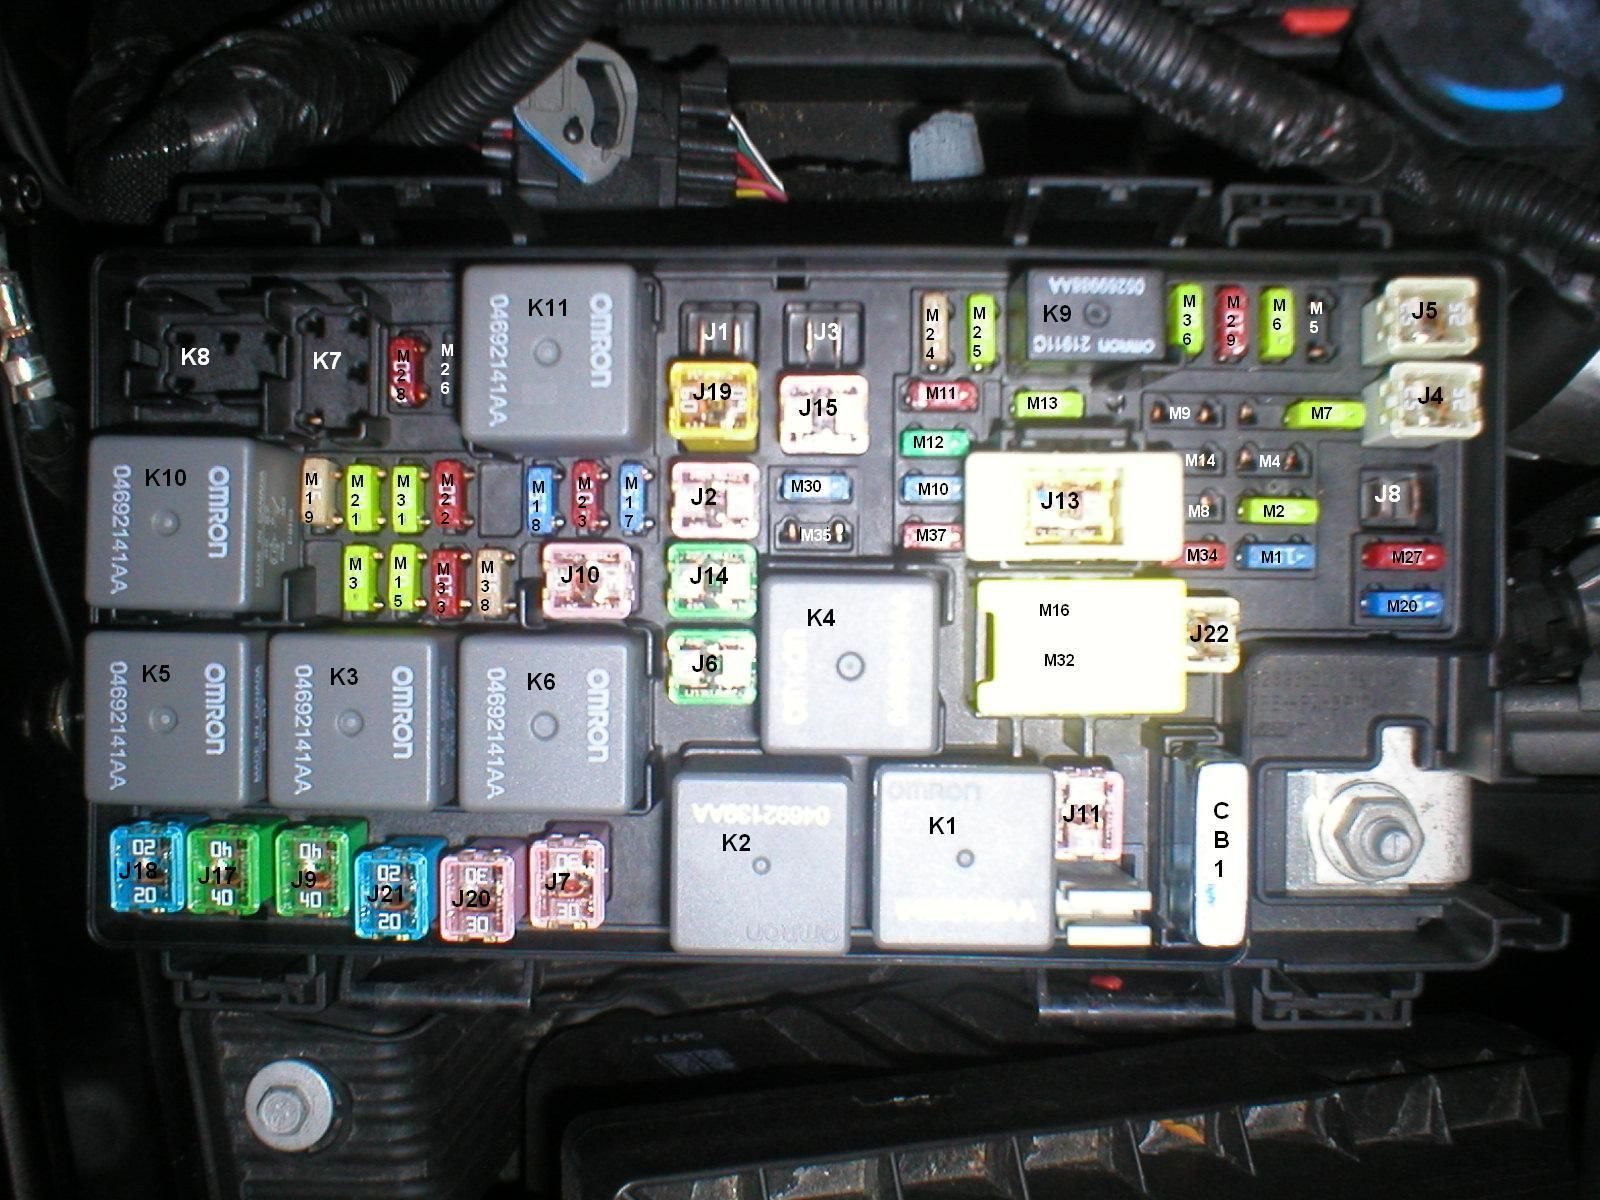 e14168e4d068a342b0792c6b4c75a229 jeep jk fuse box map layout diagram jeepforum com just empty 2004 Jeep Fuse Box Diagram at couponss.co